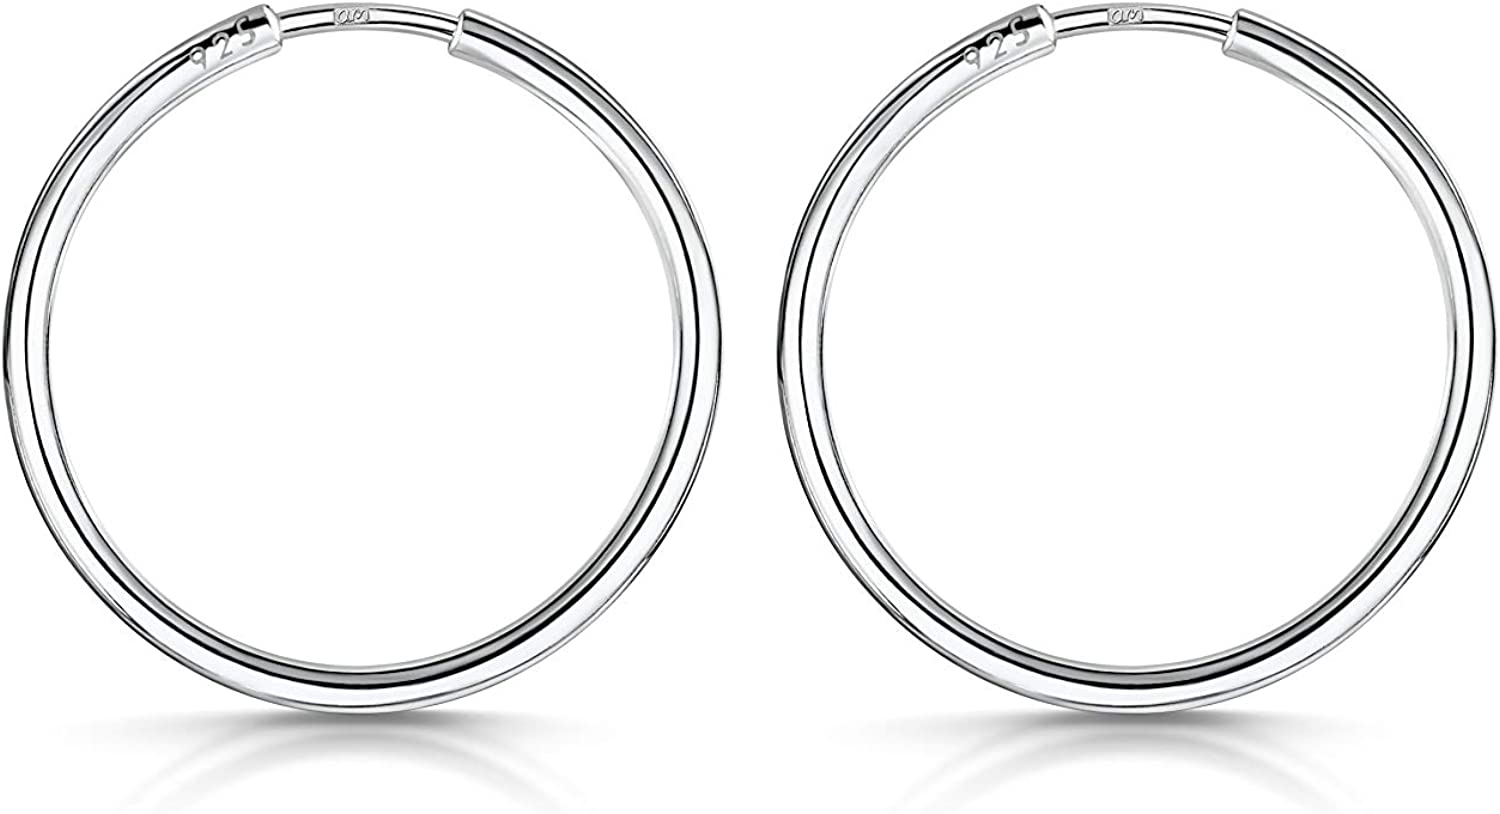 Amberta 925 Sterling Silver Fine Circle Endless Hoops - Polished Round Sleeper Earrings Diameter Size: 20 30 40 60 80 mm